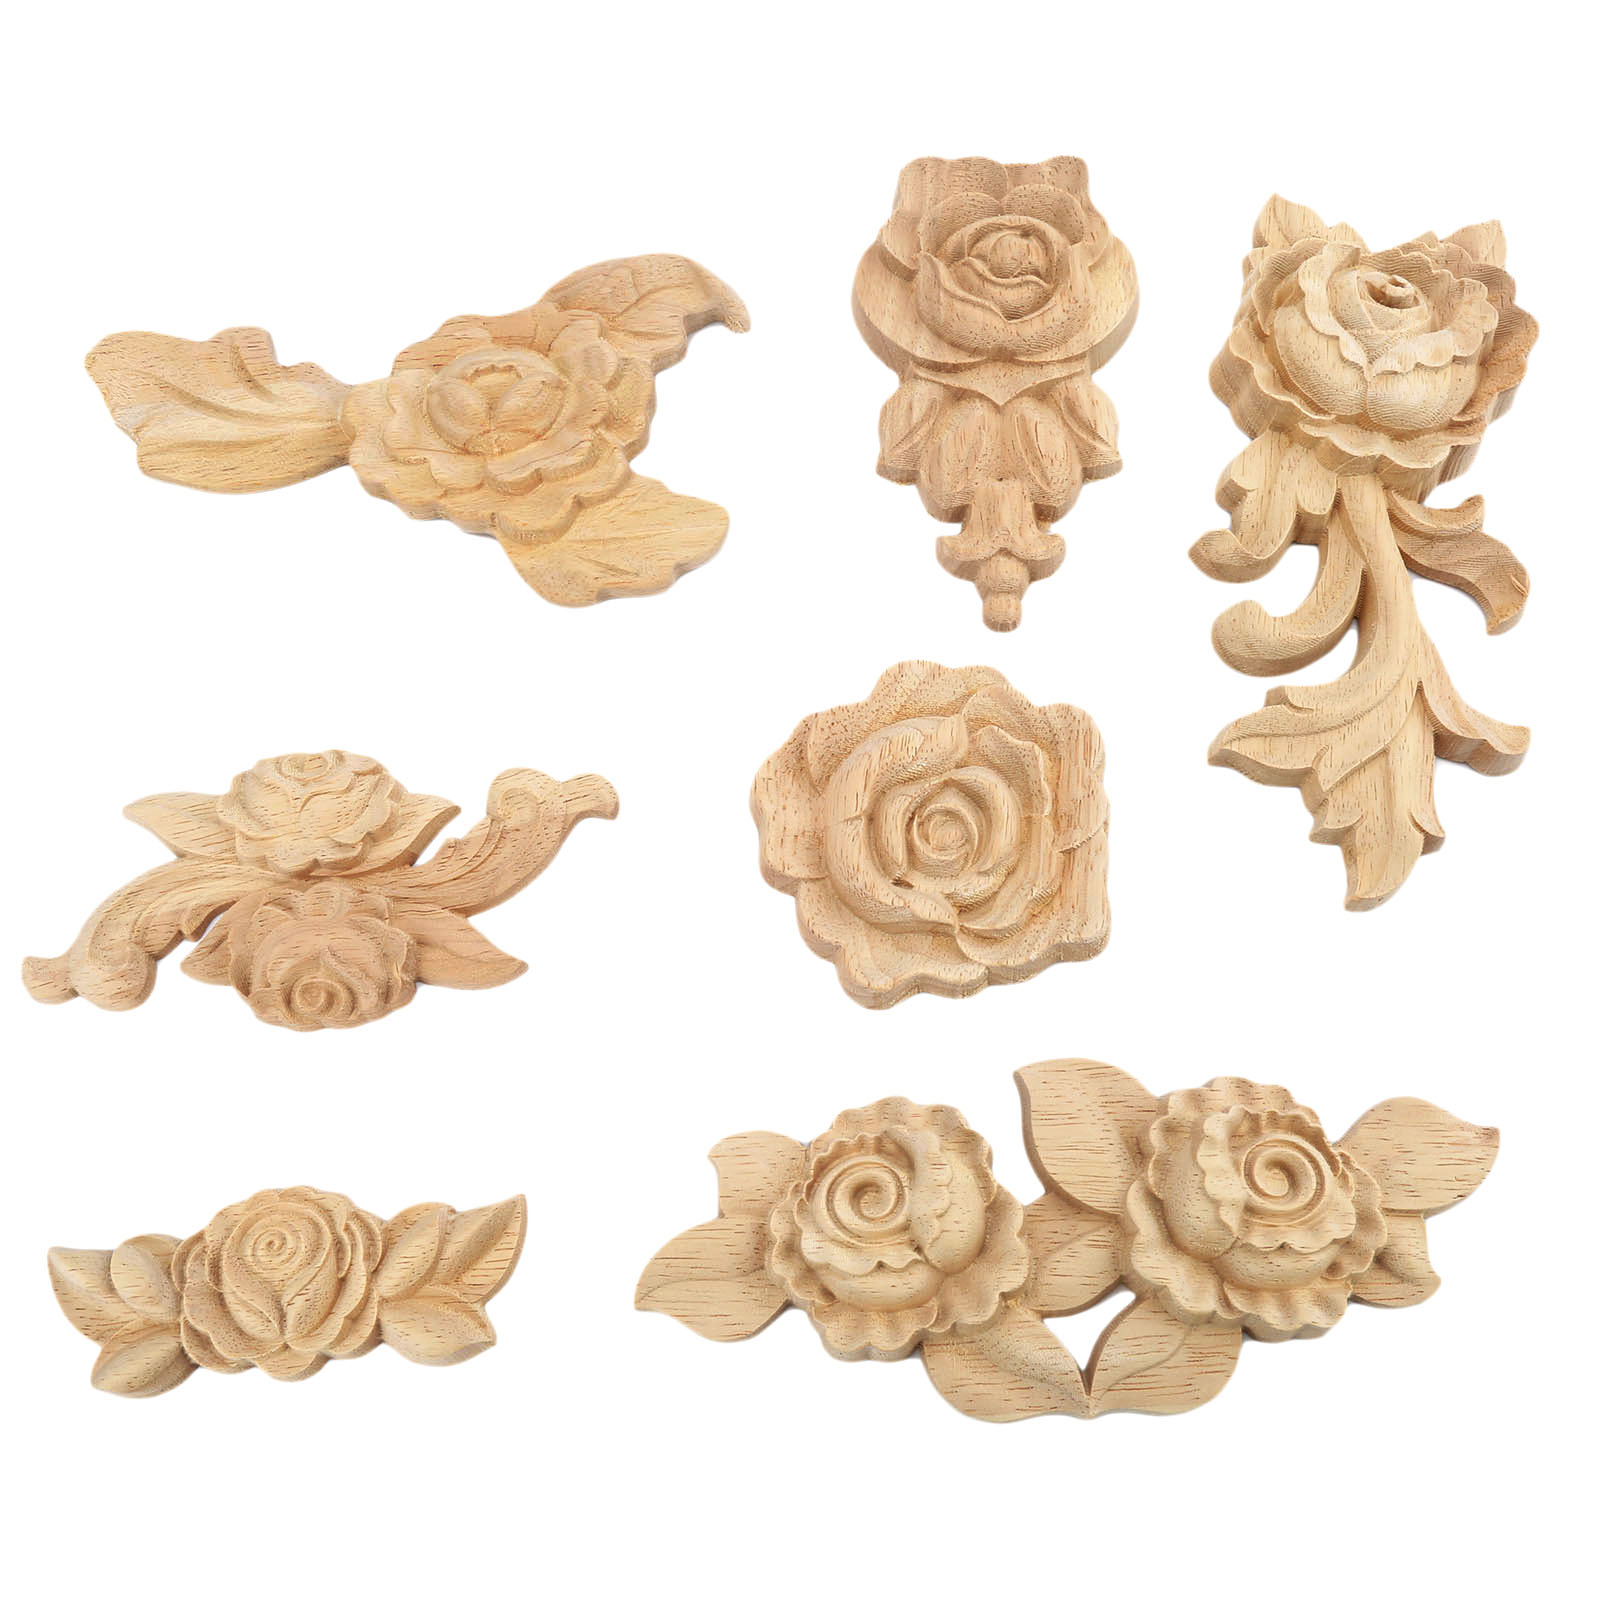 1Pc Woodcarving Corner Decal Unpainted Wood Carved Decal Corner Onlay Applique Frame for Home Furniture Cabinet Door Crafts in Figurines Miniatures from Home Garden